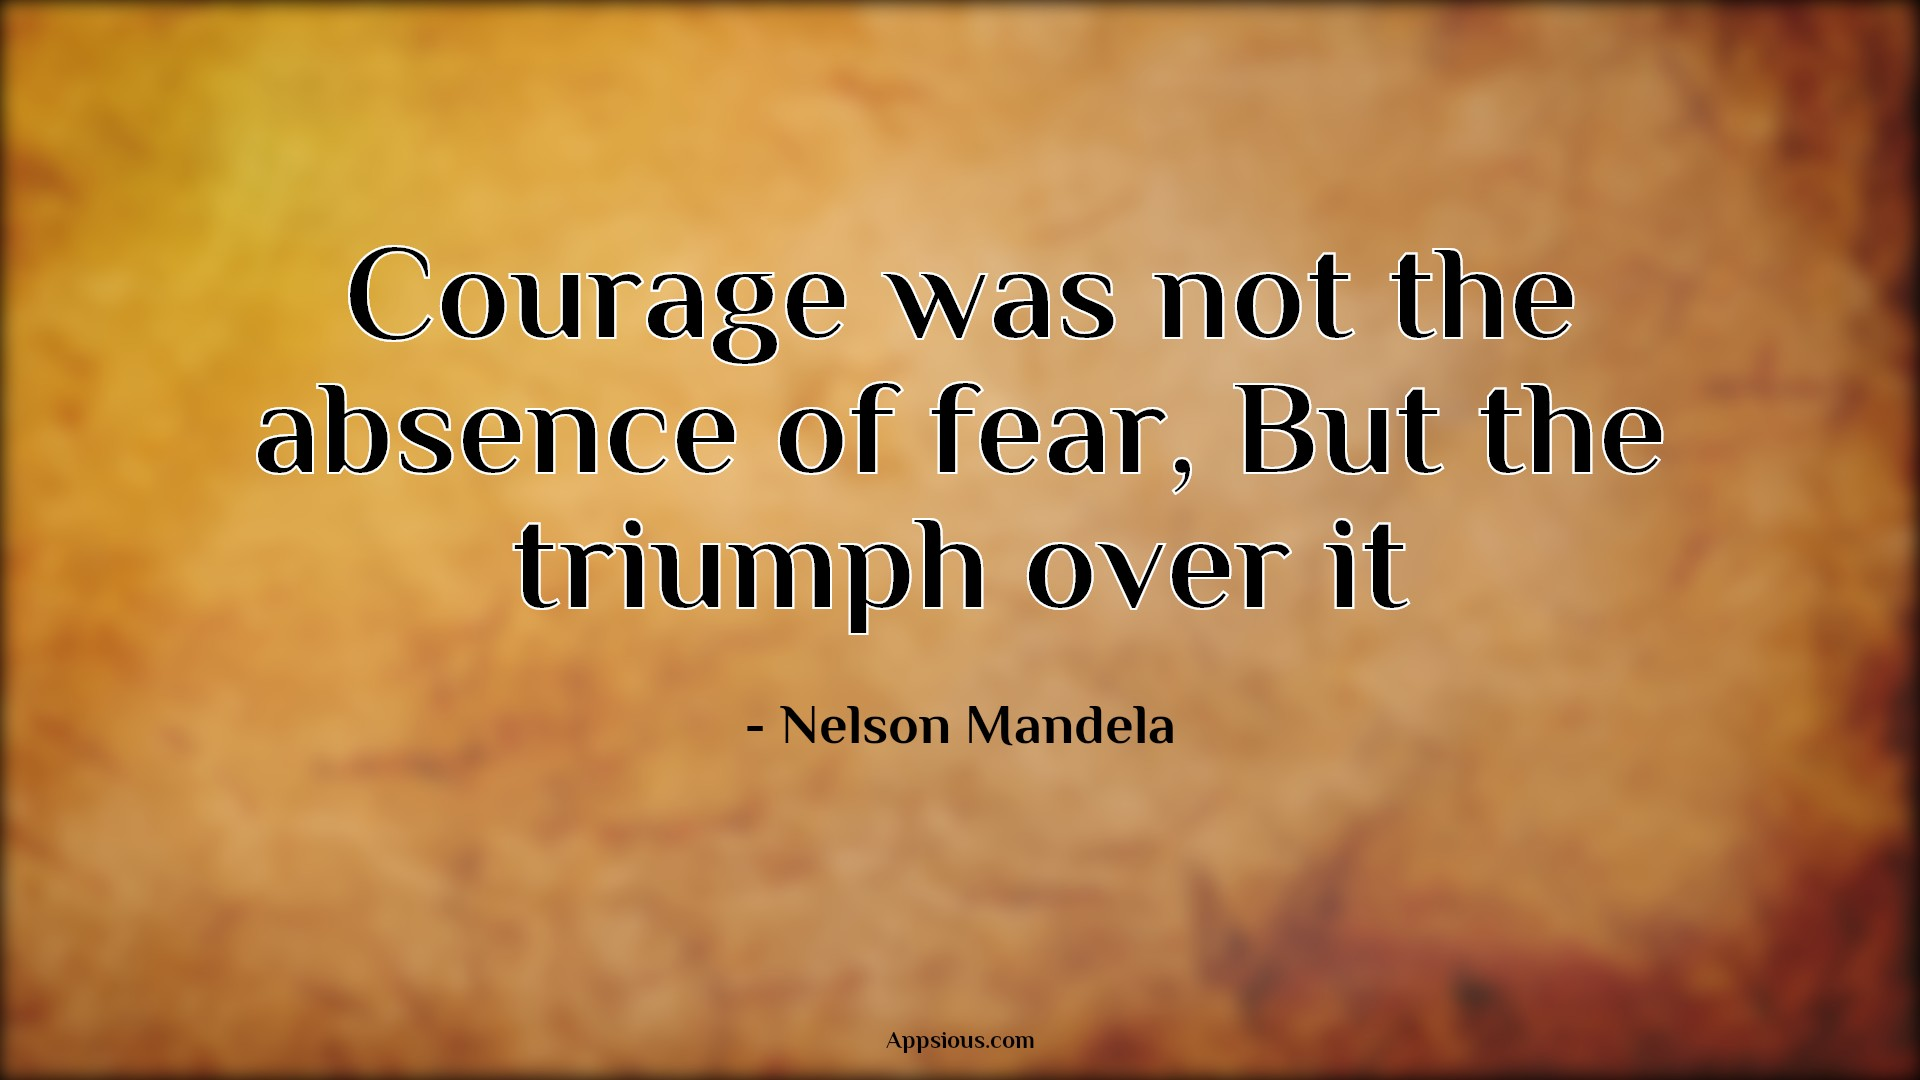 Courage was not the absence of fear, But the triumph over it